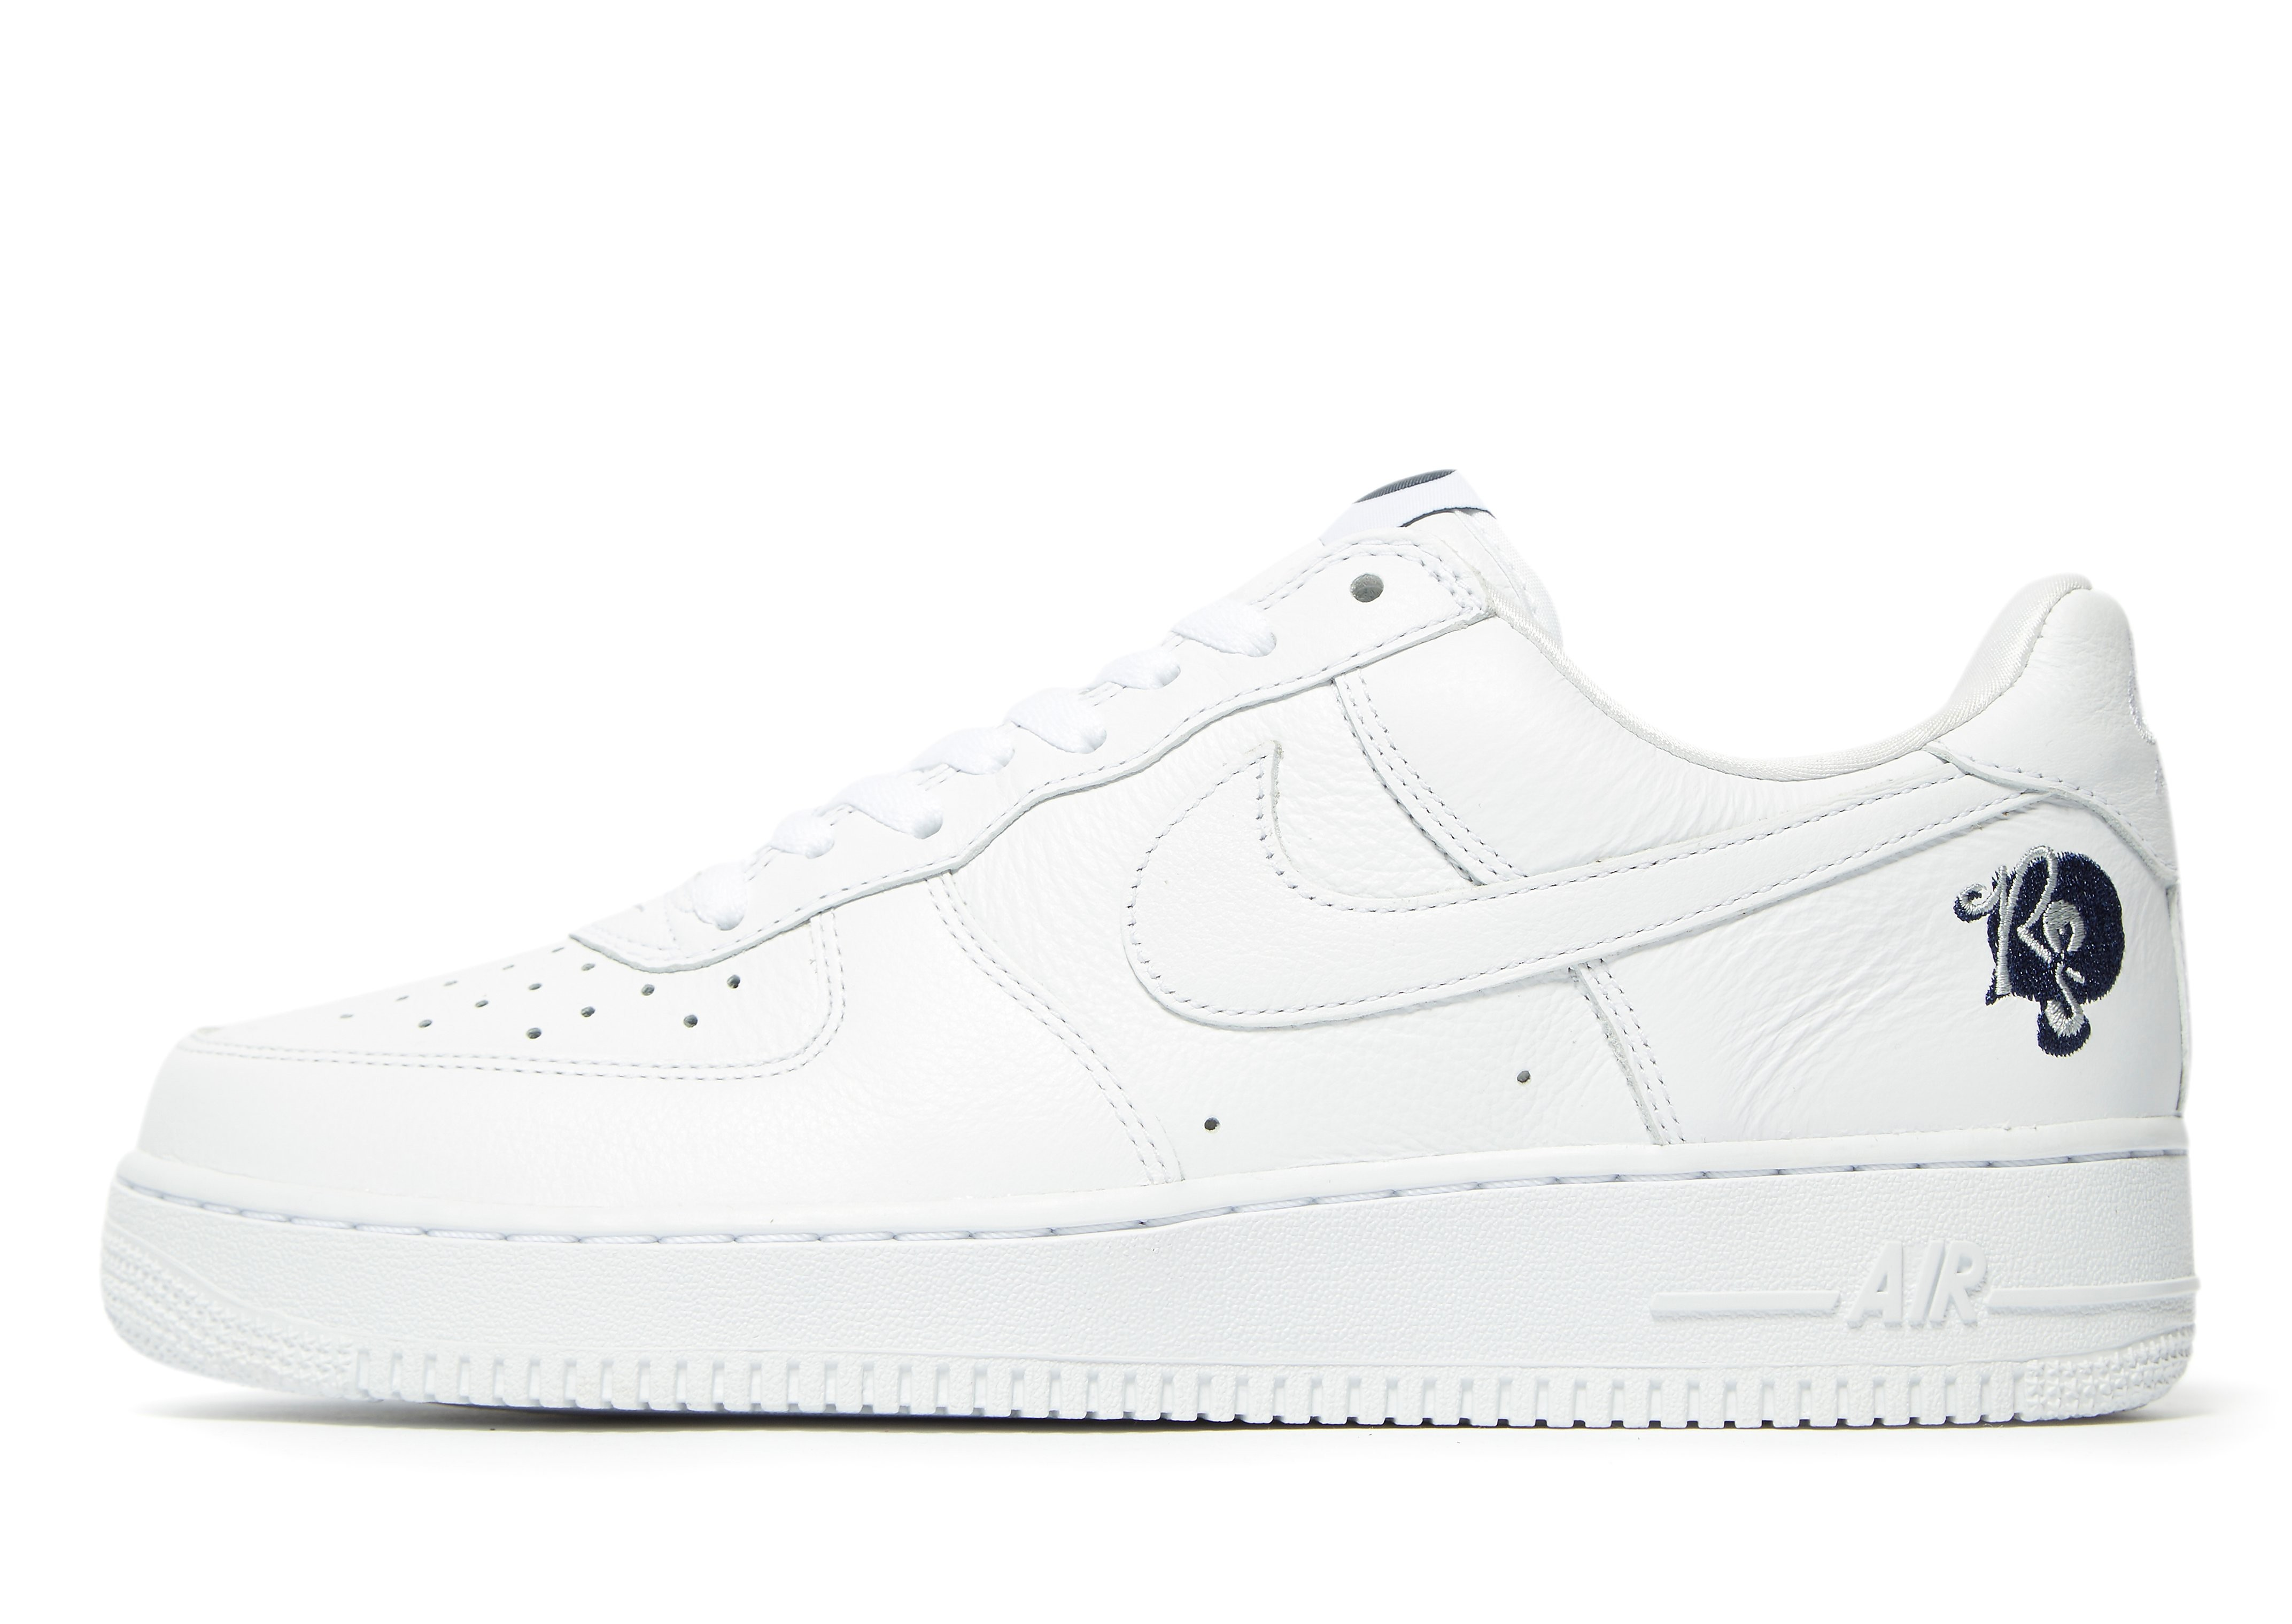 Nike Air Force 1 '07 Roc-A-Fella Women's